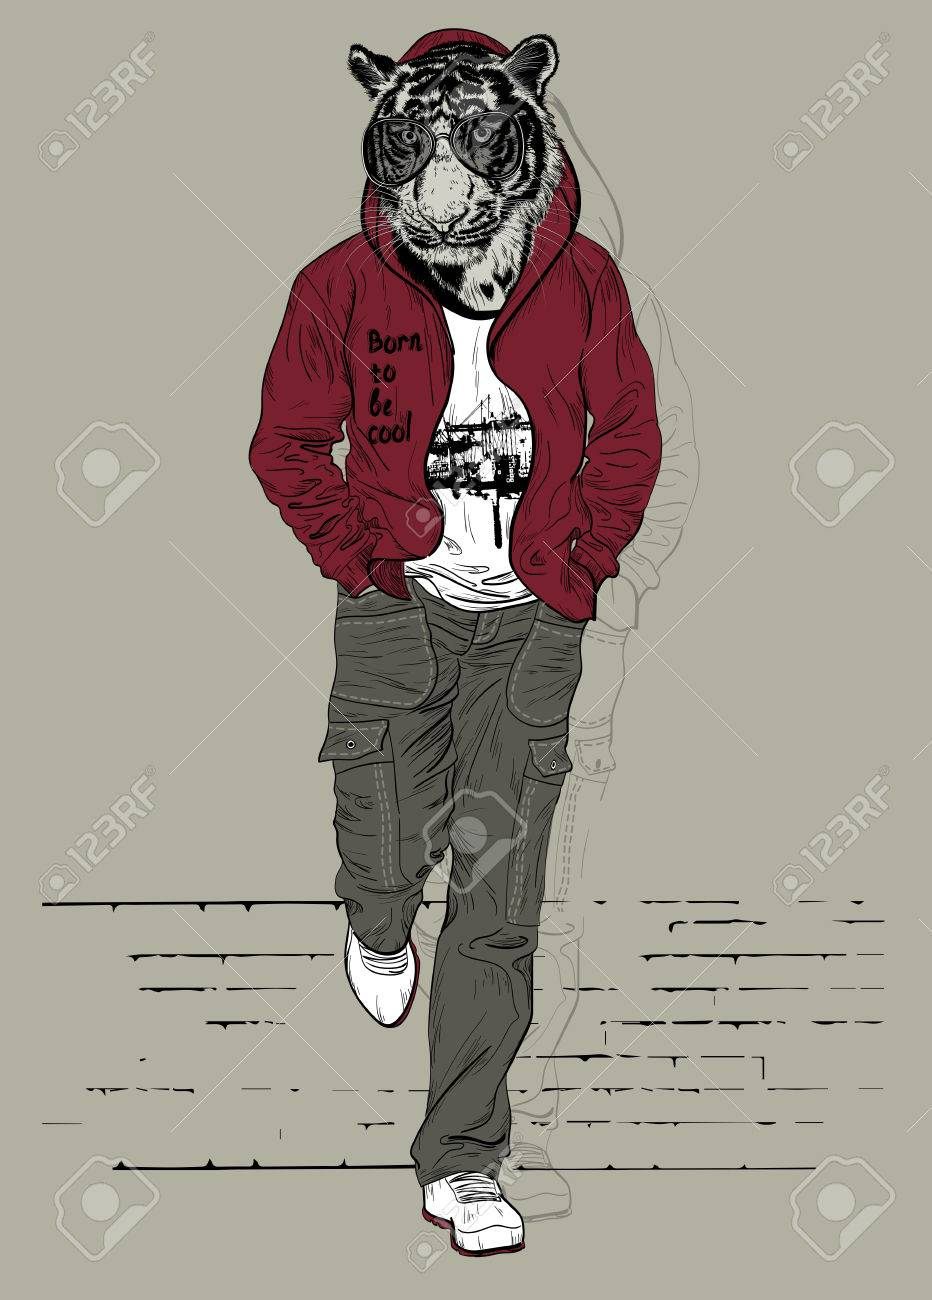 Fashion man with the head of tiger for poster or t-shirt print - 49688426